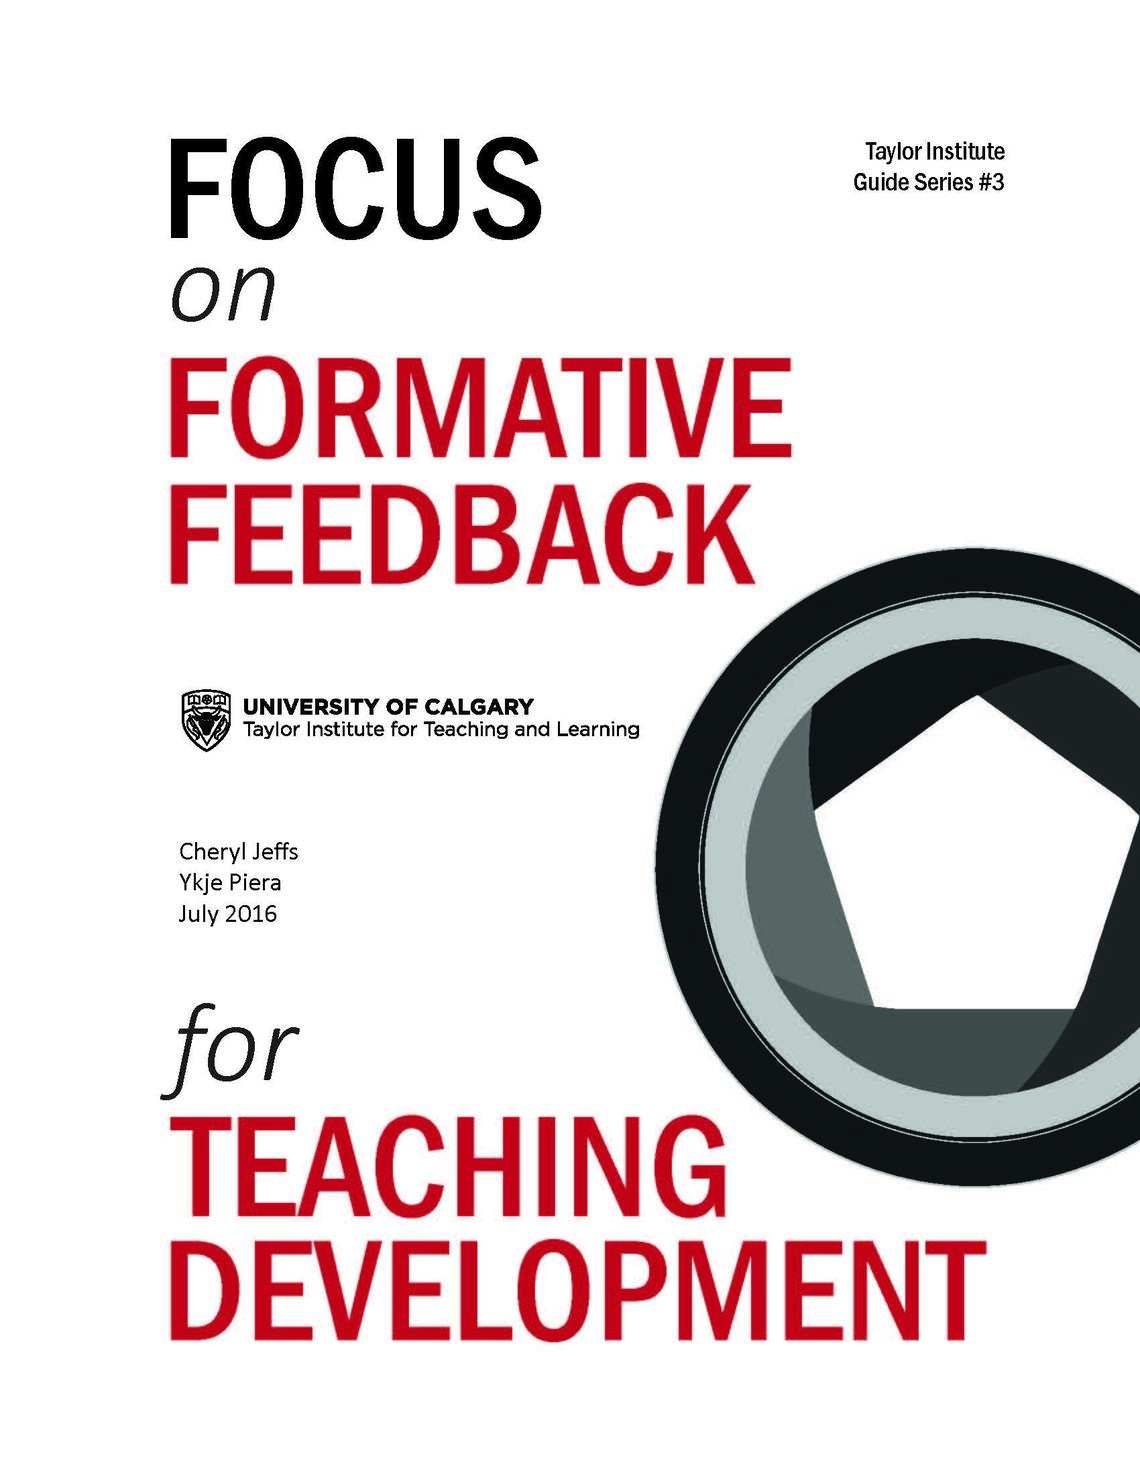 Focus on Formative Feedback for Teaching Development